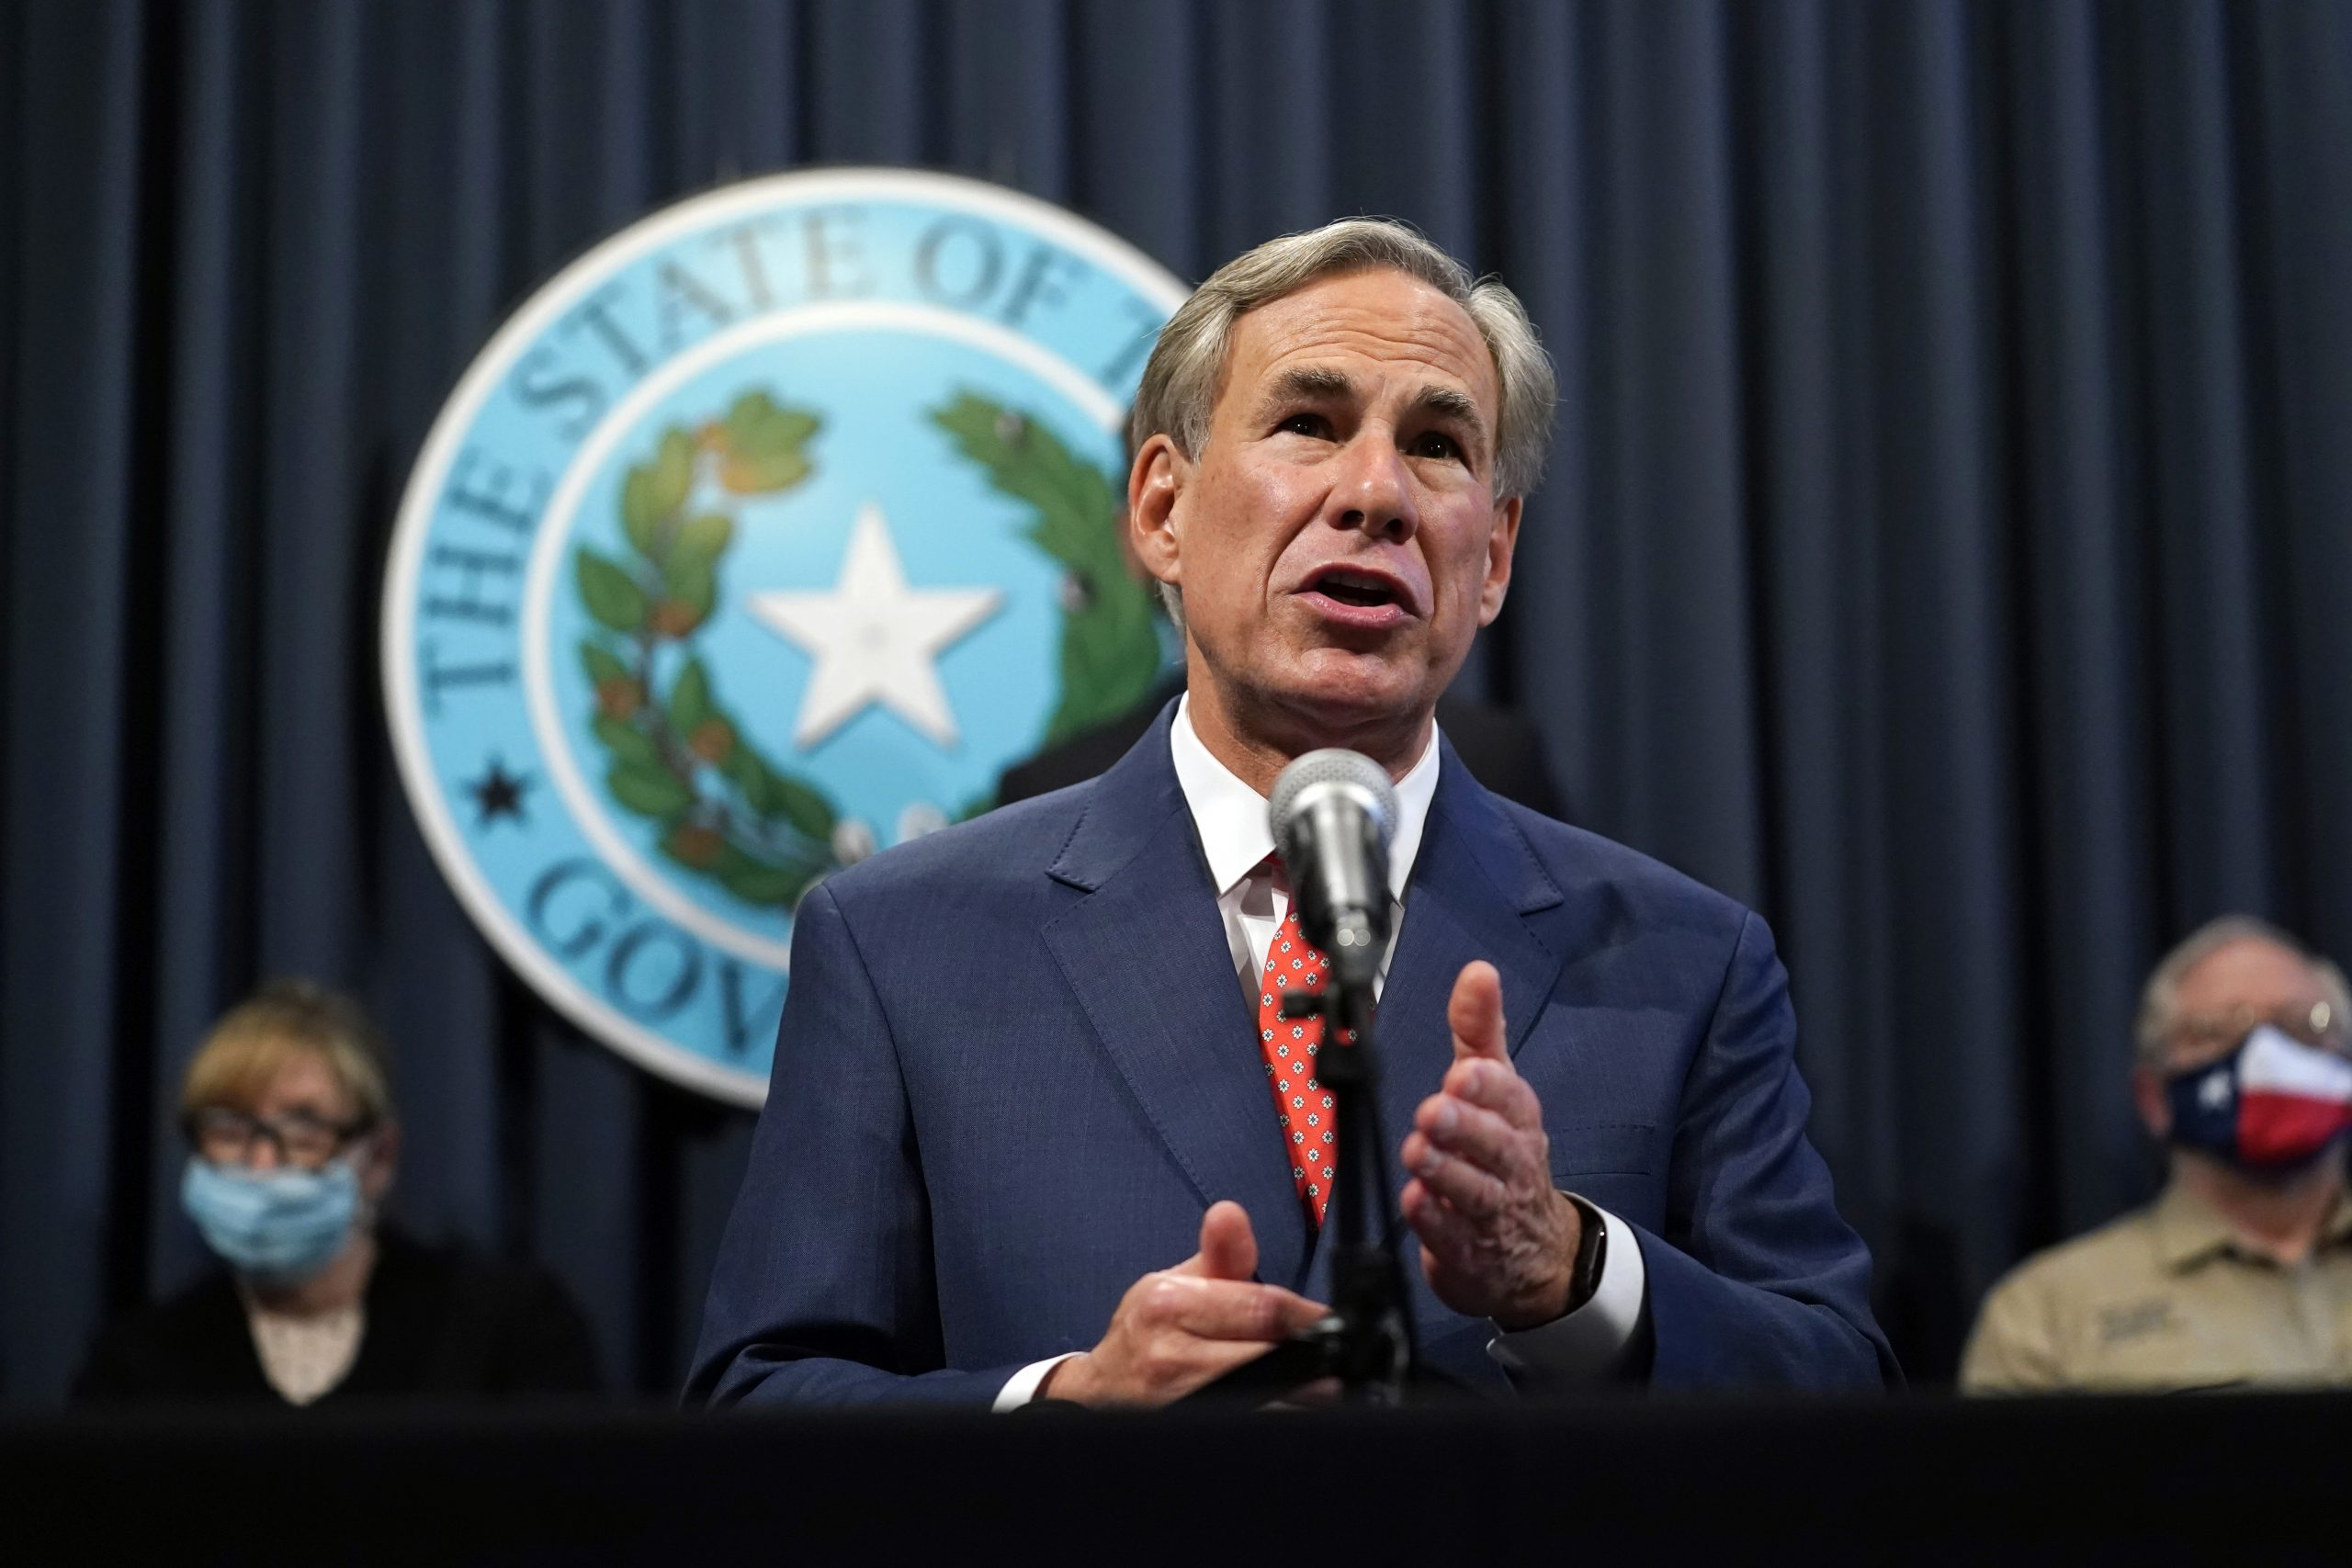 Watch LIVE: Texas Gov. Abbott discusses latest on statewide virus vaccine rollout 3